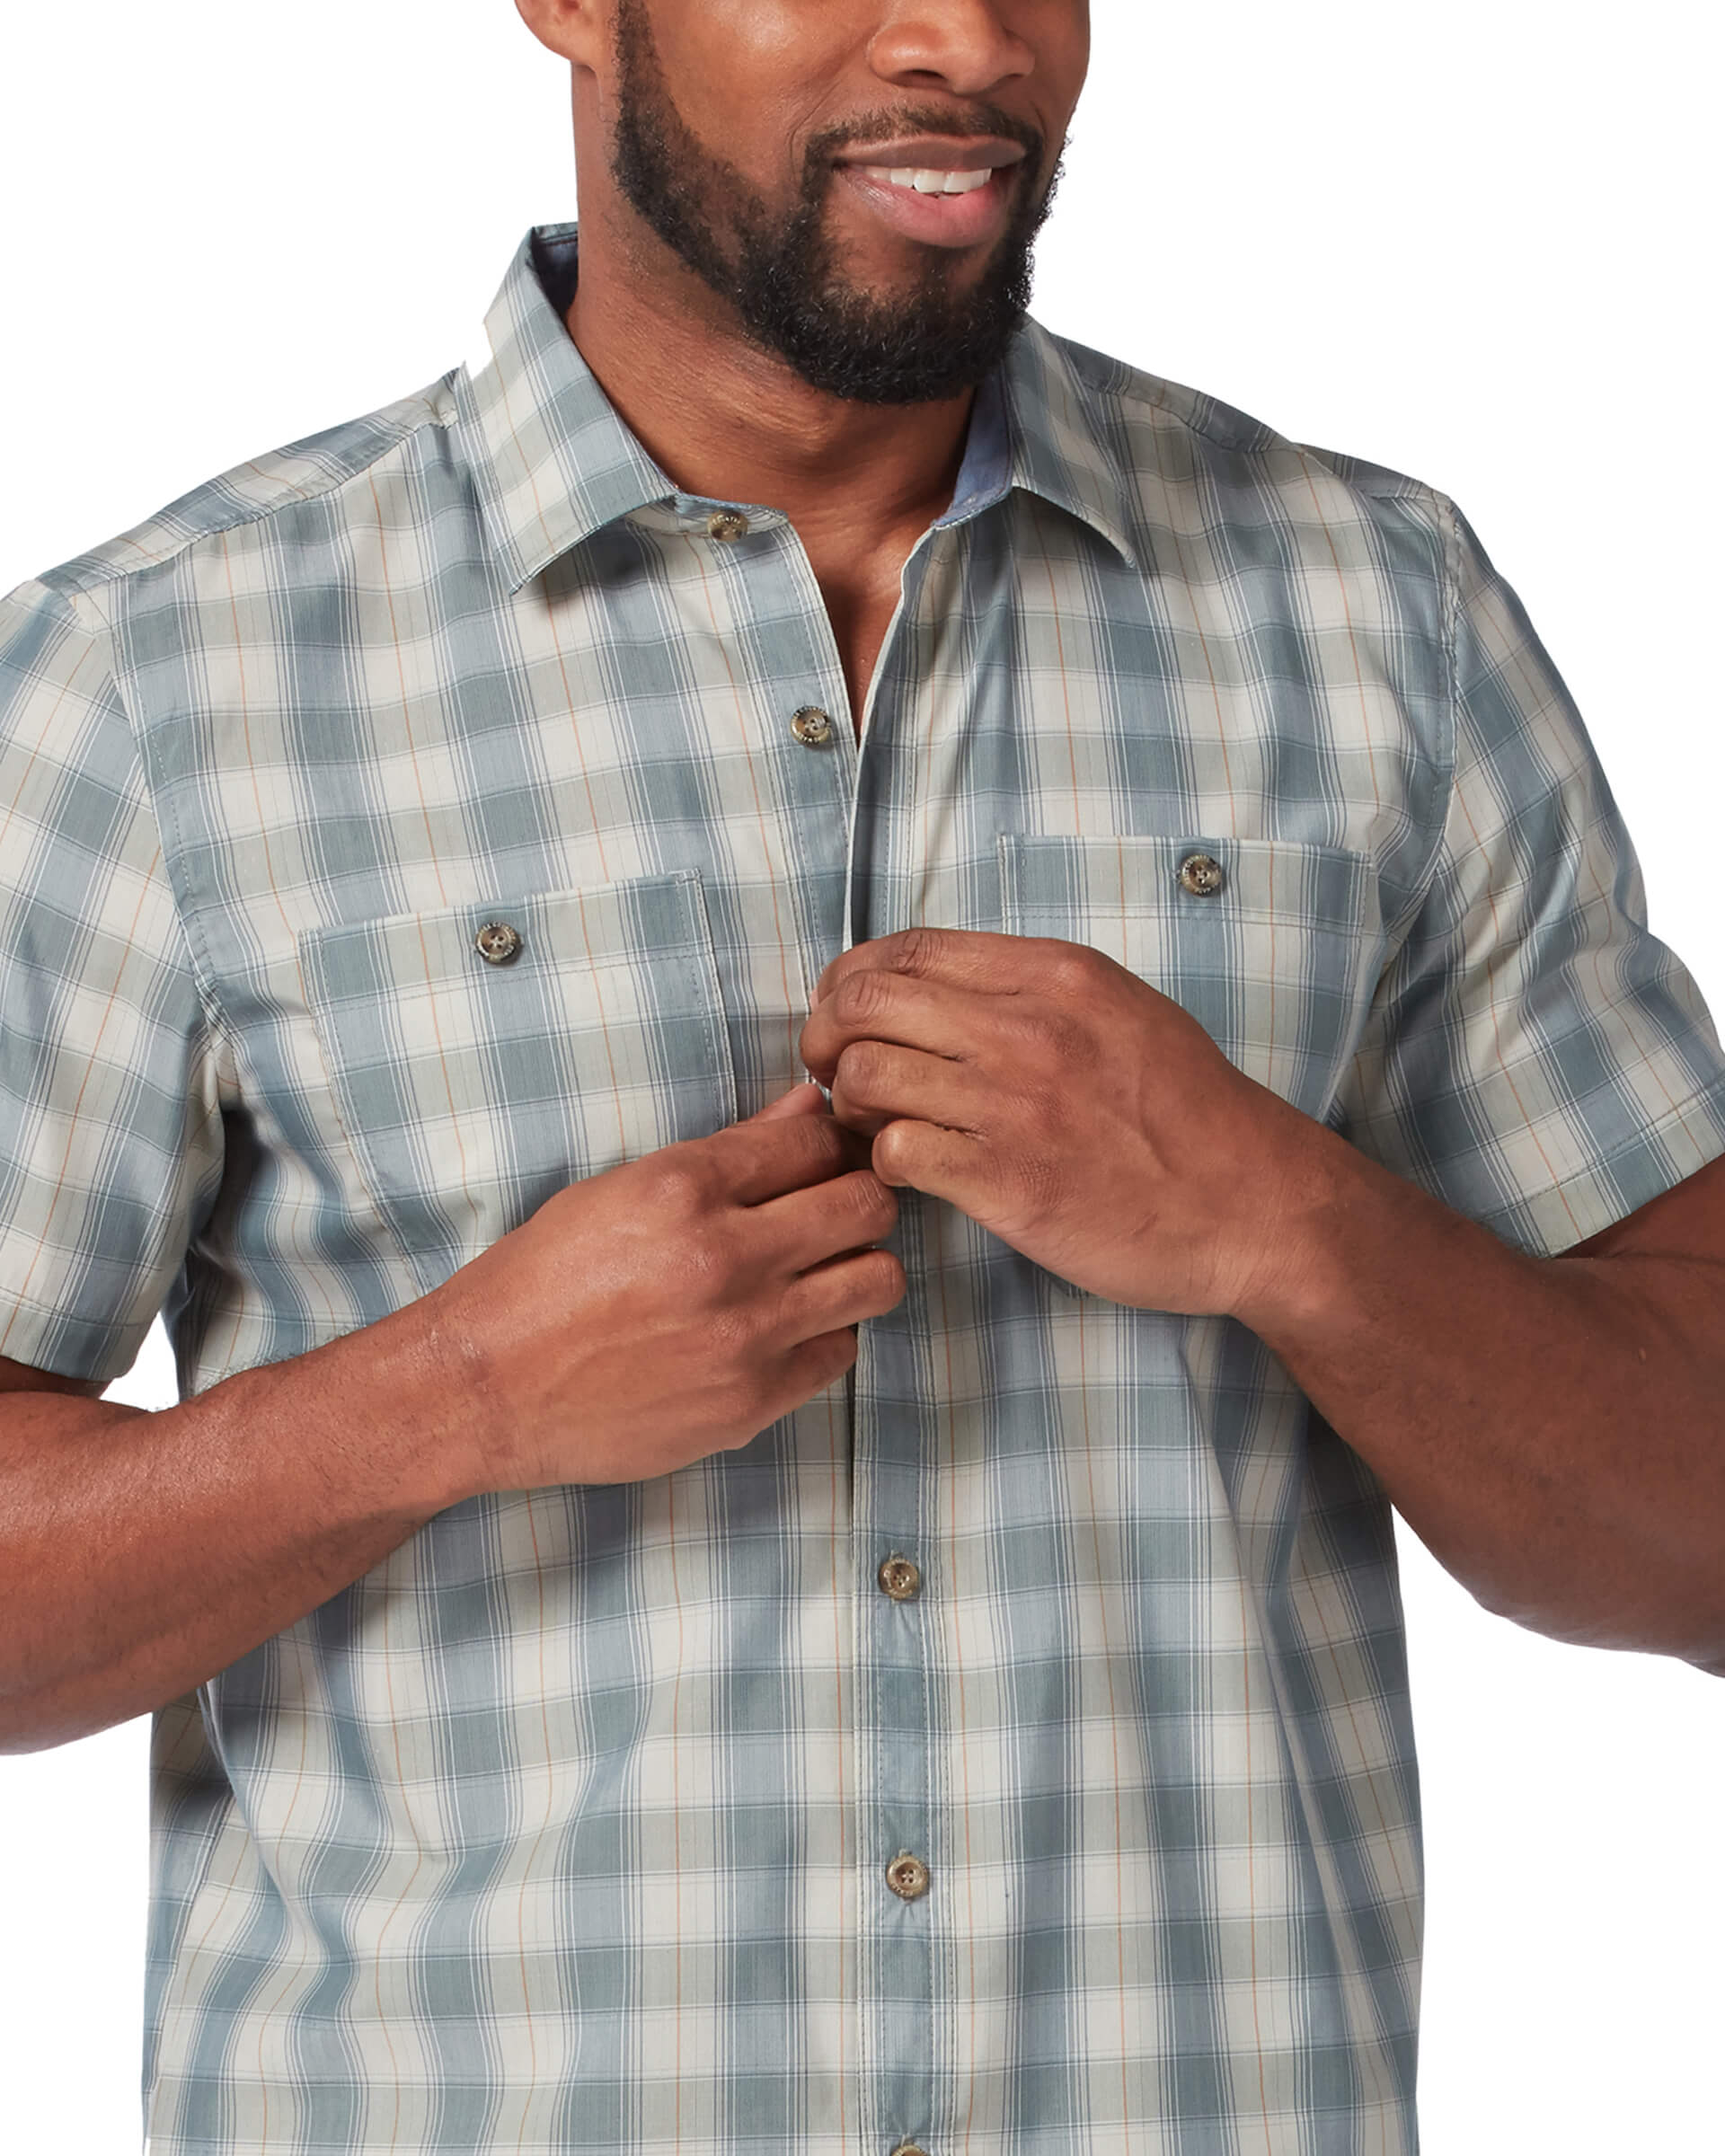 Men's Poplin Adventure Short Sleeve Shirt